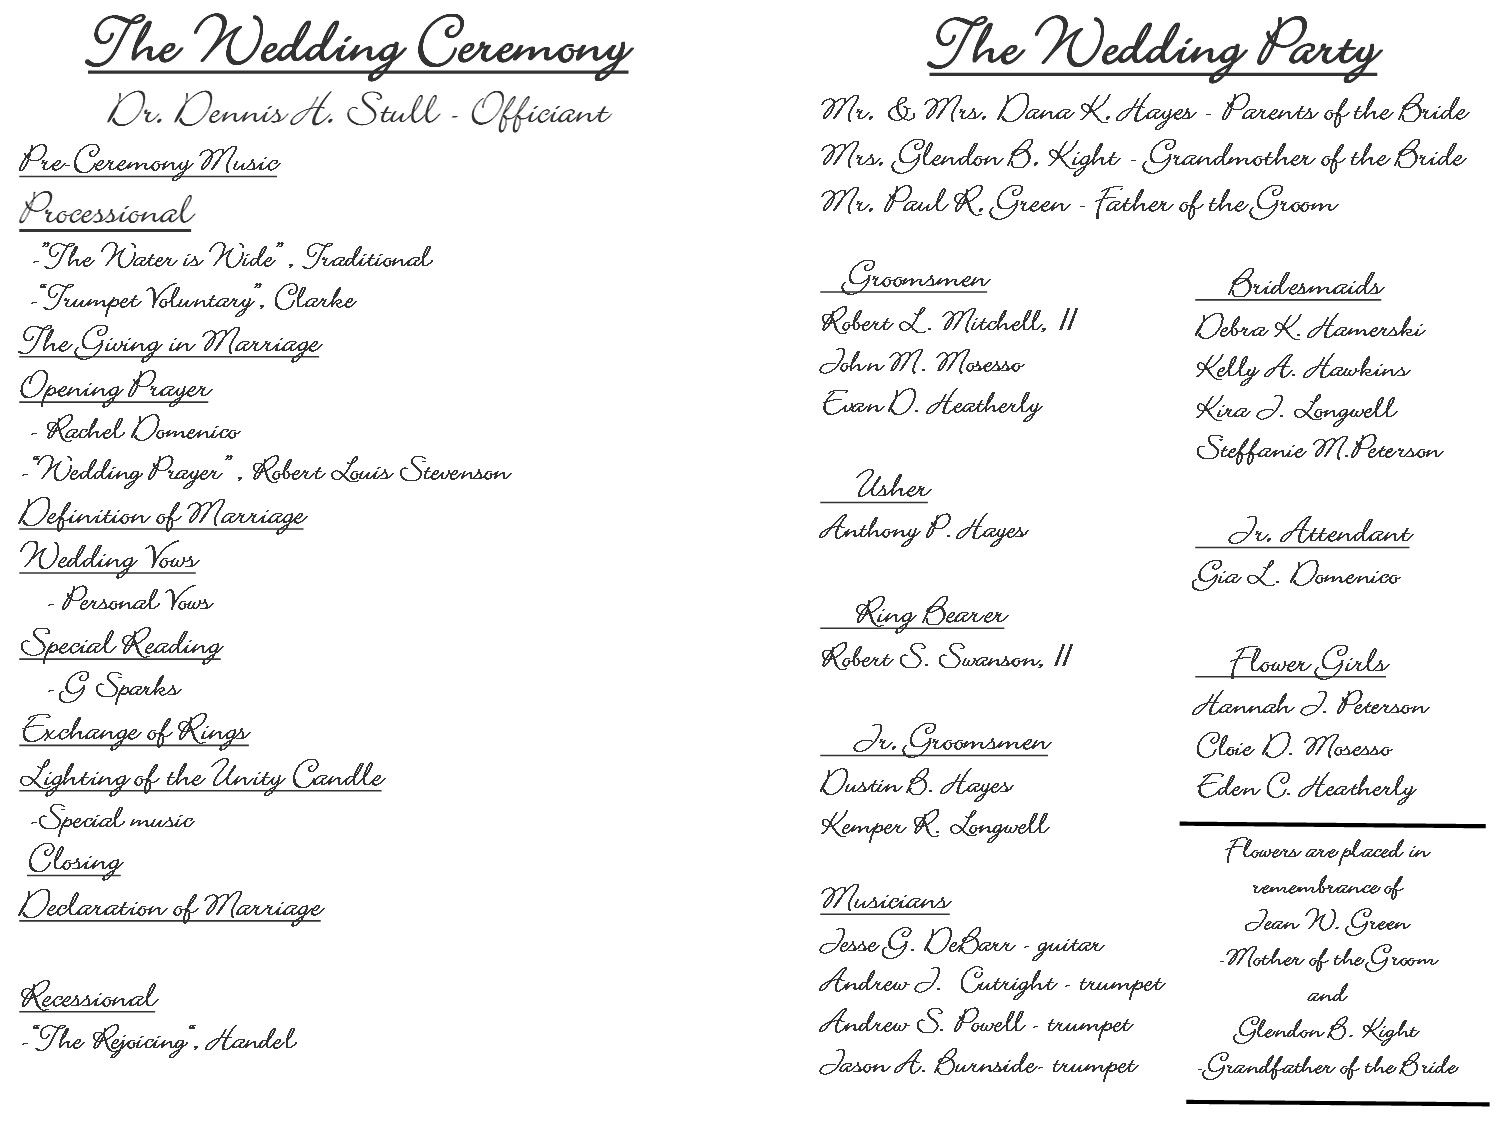 More And S Are Including Wedding Programs As Part Of Their Ceremonies It Can Be A Nice Touch To Let Your Guests Know About The Details